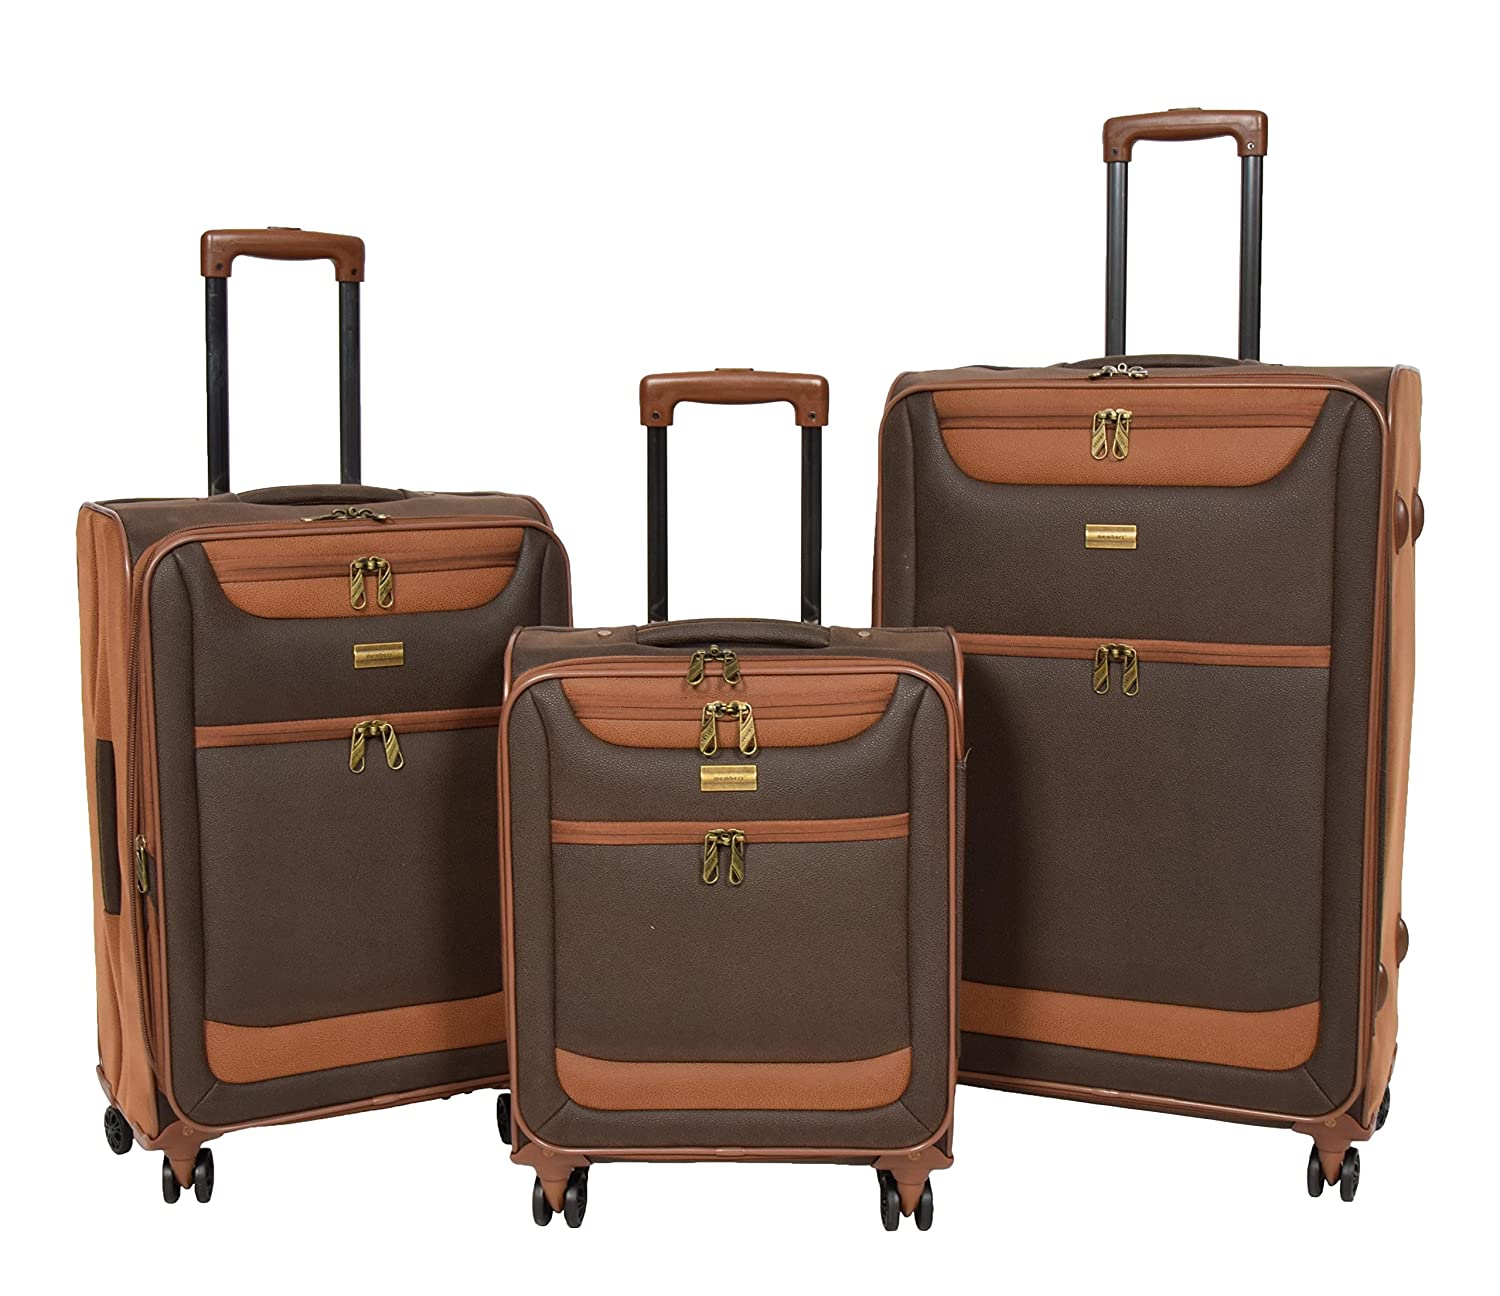 4 Wheel Luggage Set Soft Faux Suede Brown 3 Sizes Cabin/Medium/Large Suitcases Travel Bag - Earth (Brown)